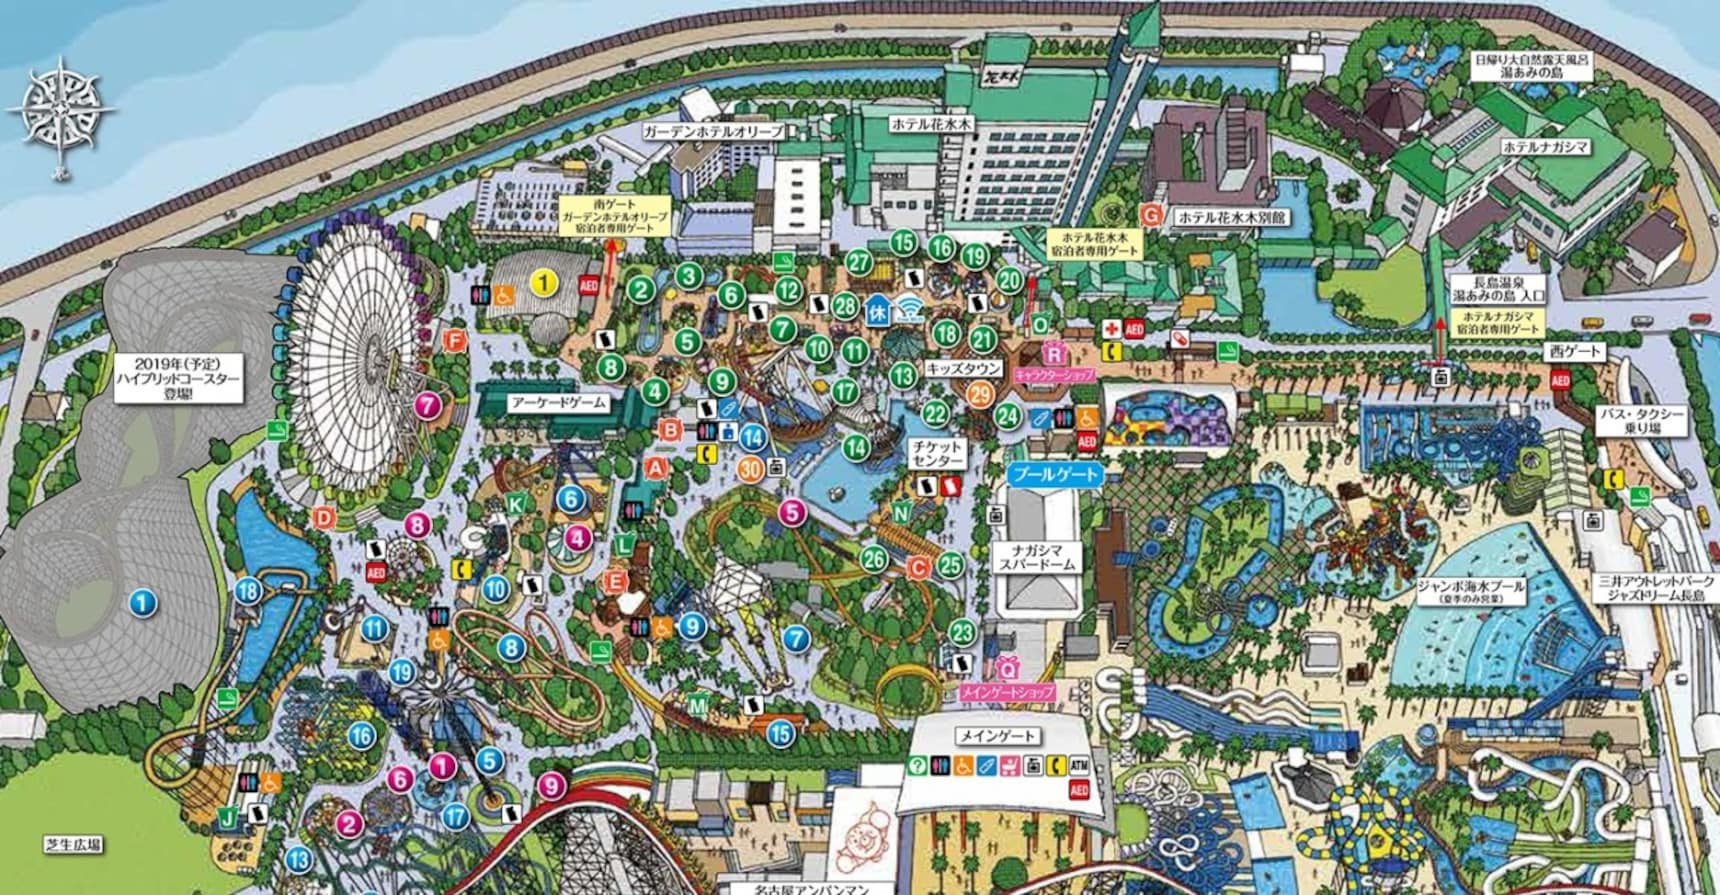 TripAdvisor's Top 10 Theme Parks in Japan